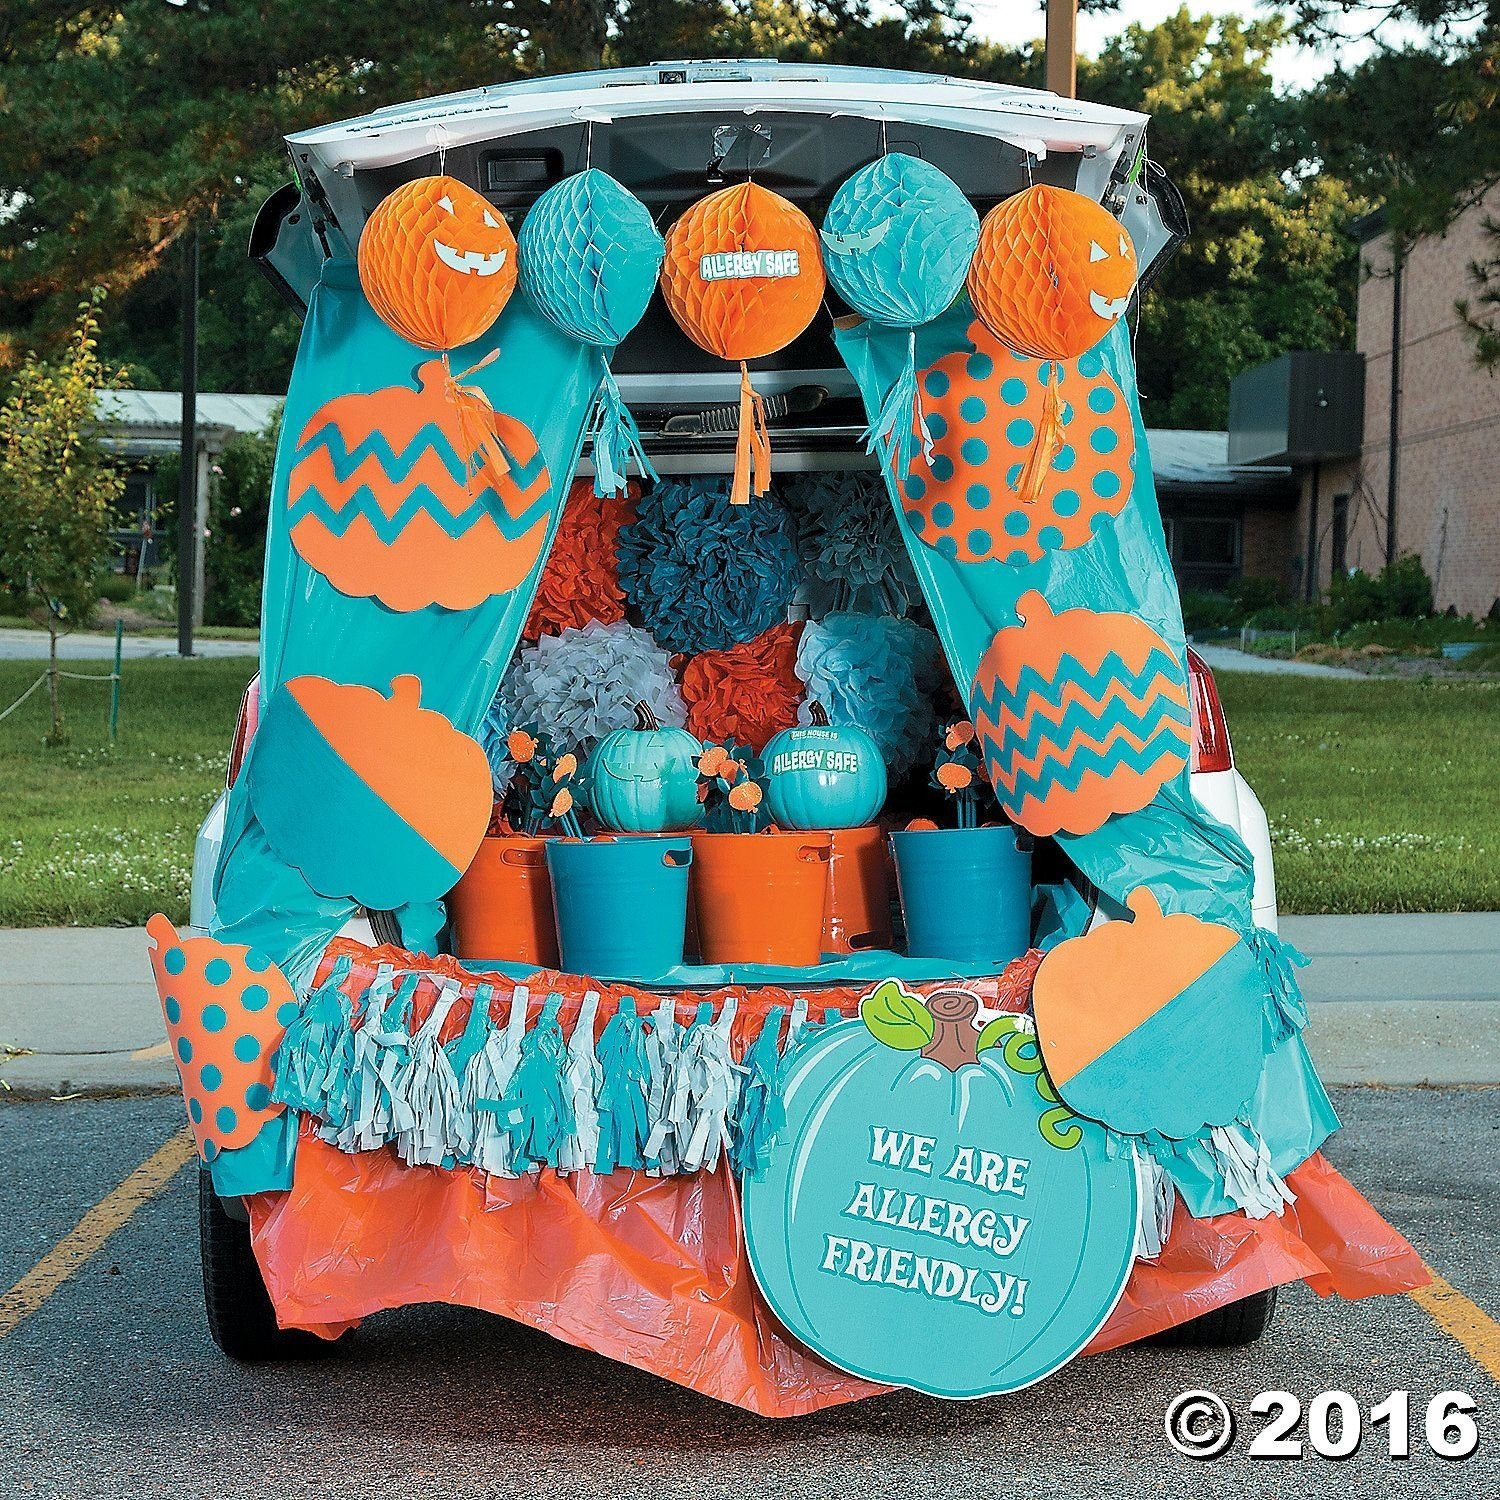 10 Stylish Trunk Or Treat Decorating Ideas For Trucks trunk or treat teal pumpkin d trunk or treat pinterest teal 6 2021